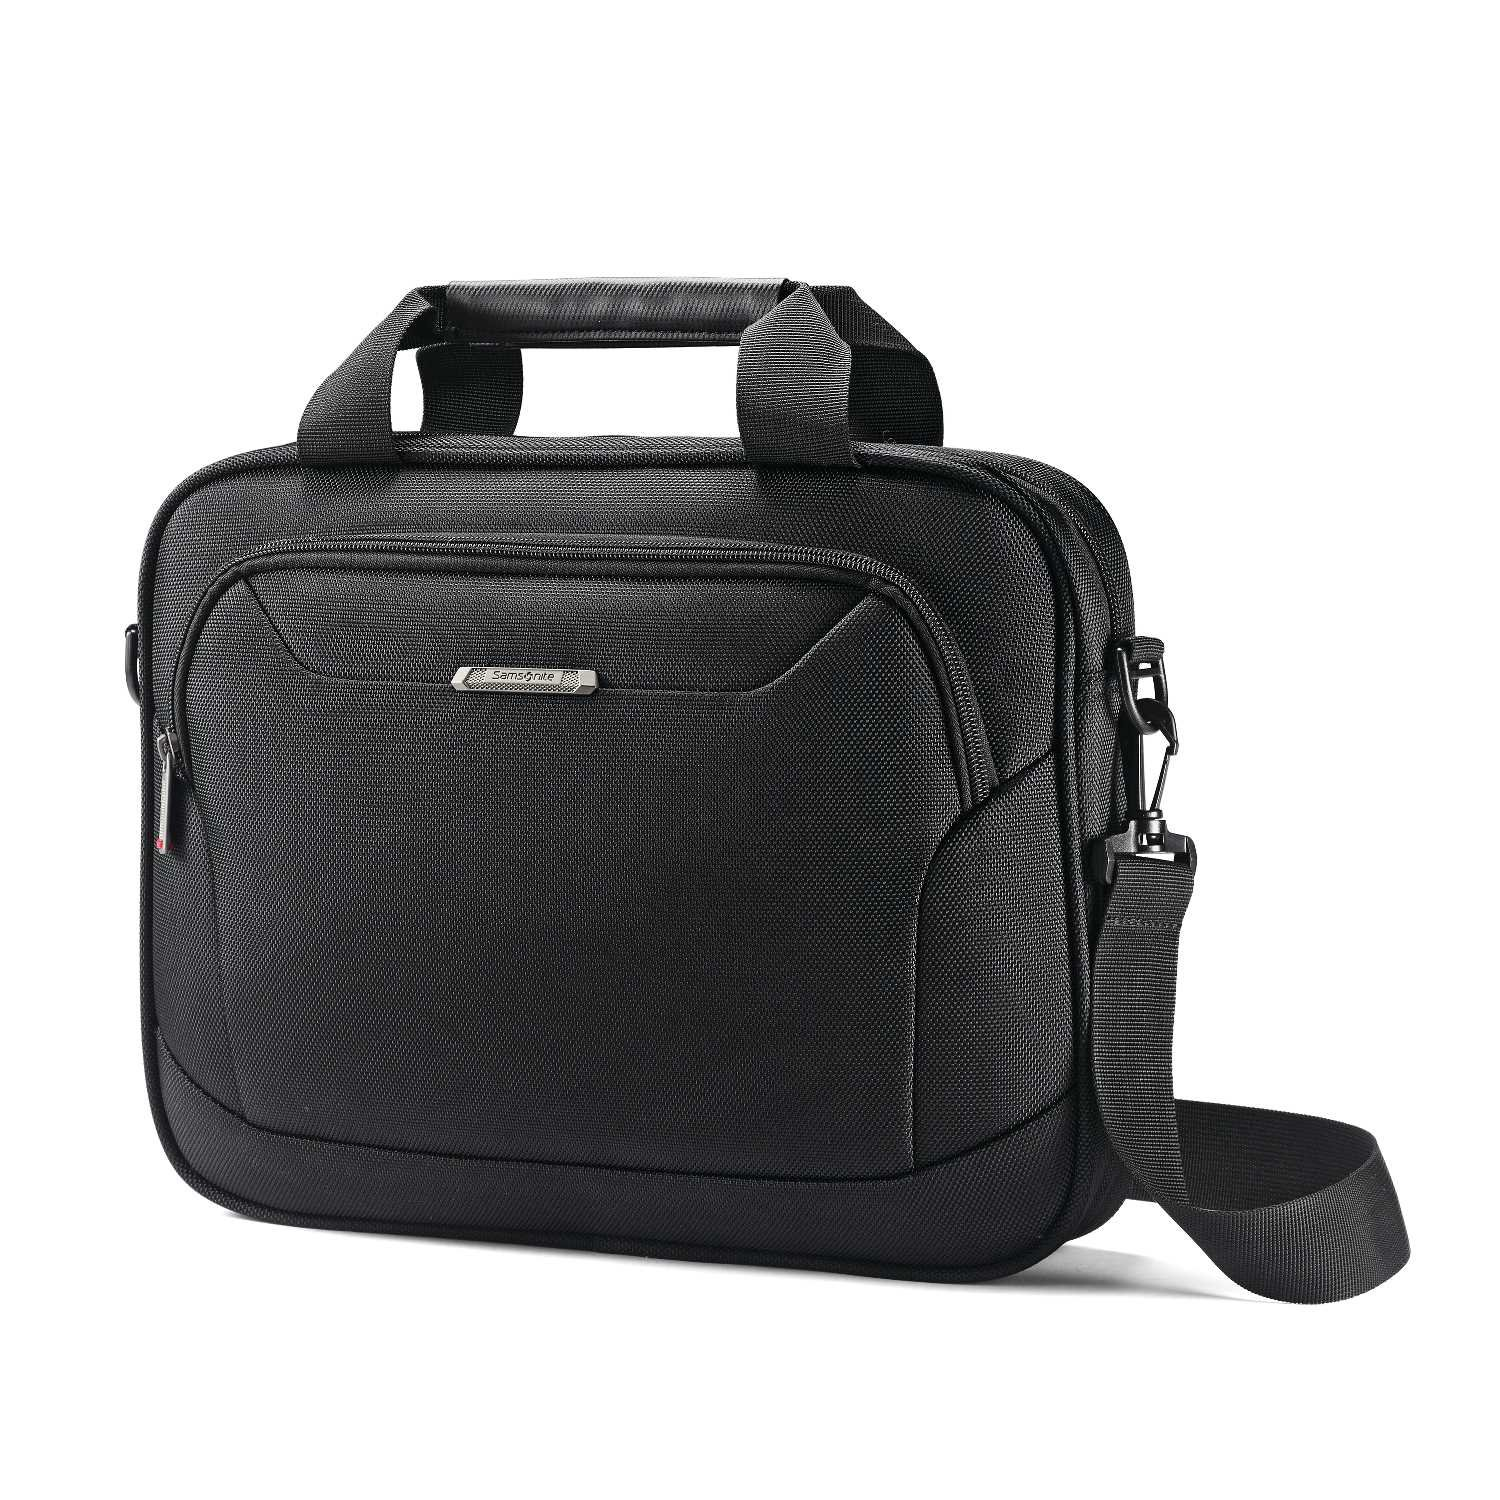 Samsonite Xenon 3.0 Laptop Shuttle 13 Bag Black One Size